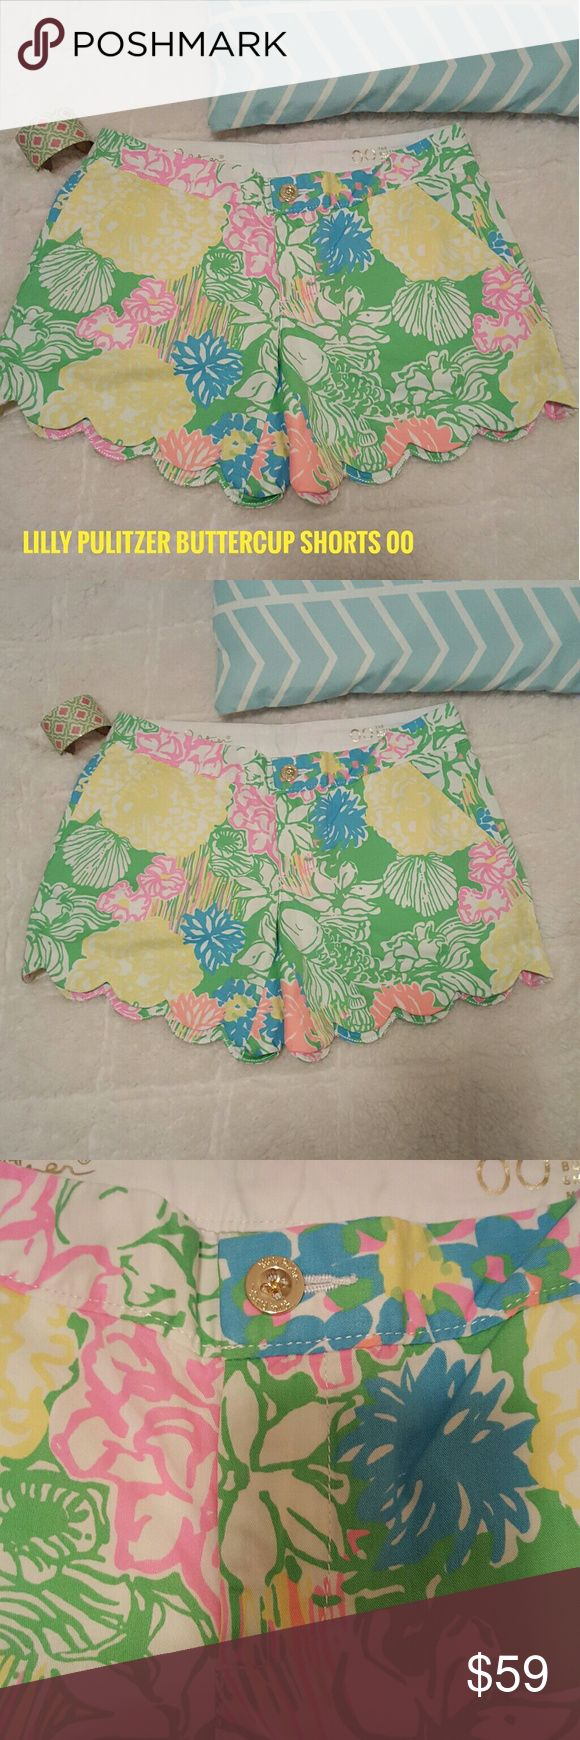 Lilly Pulitzer The Buttercup Scalloped Shorts 00 Size 00 Inseam 5 inches Pretty preppy look for spring and summer!! 30 percent off bundles  See my closet for amazing bundle ideas including swimwear and shoes!! Lilly Pulitzer Shorts